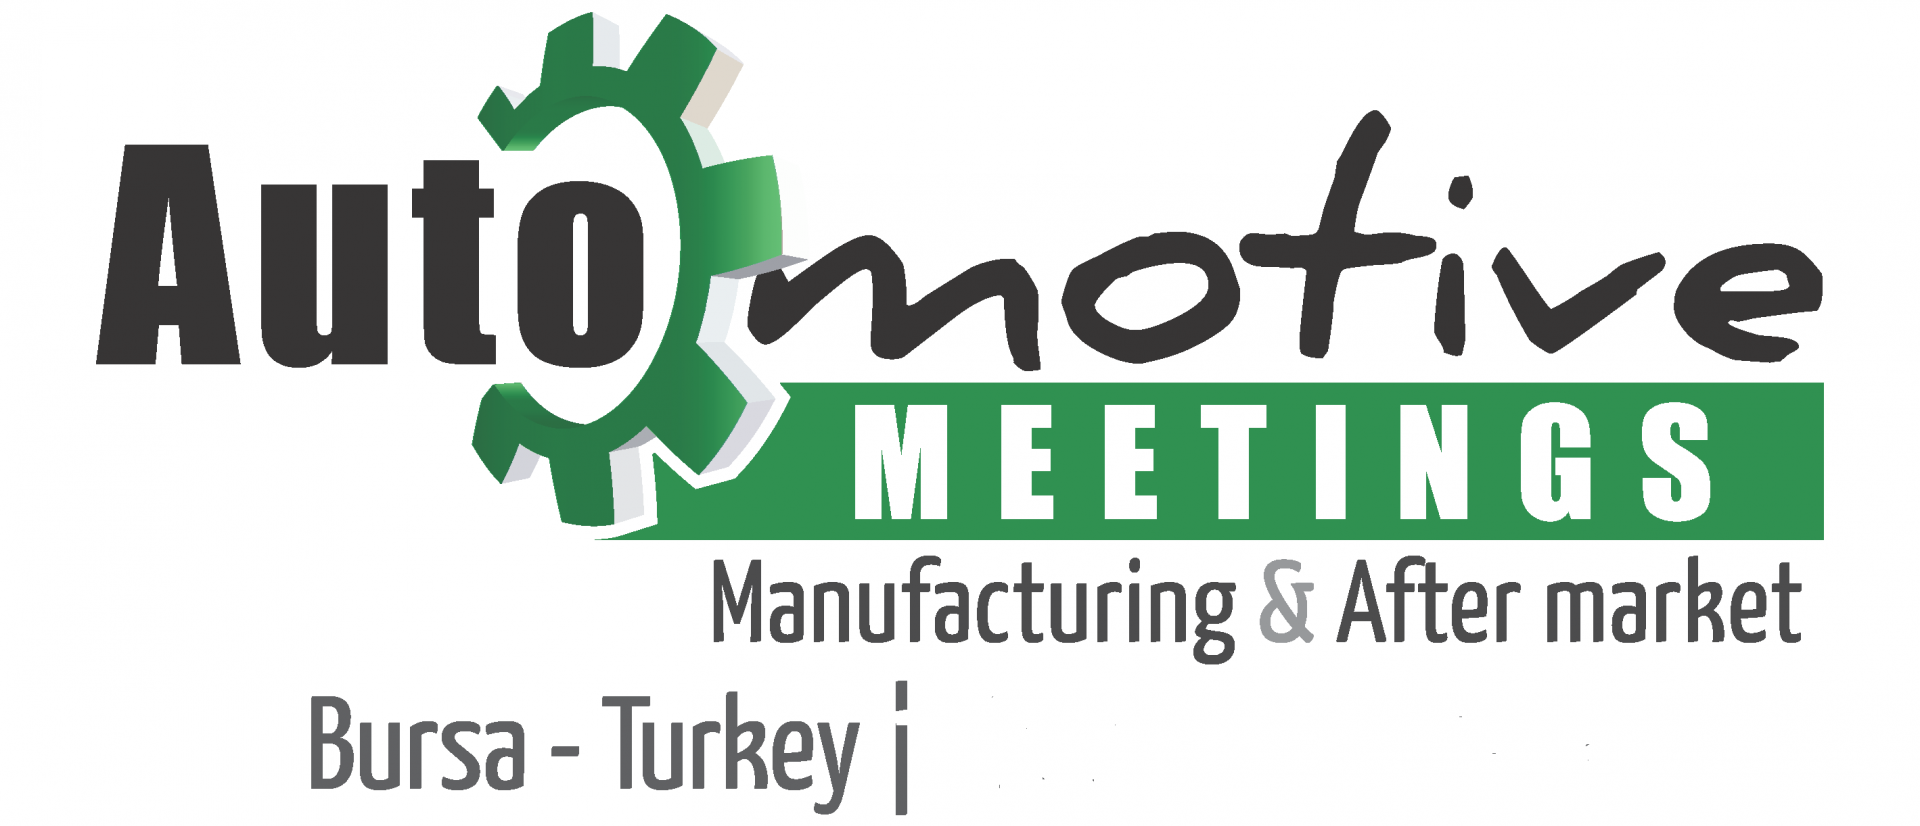 AUTOMOTIVE MEETINGS MANUFACTURING & AFTER MARKET 2019